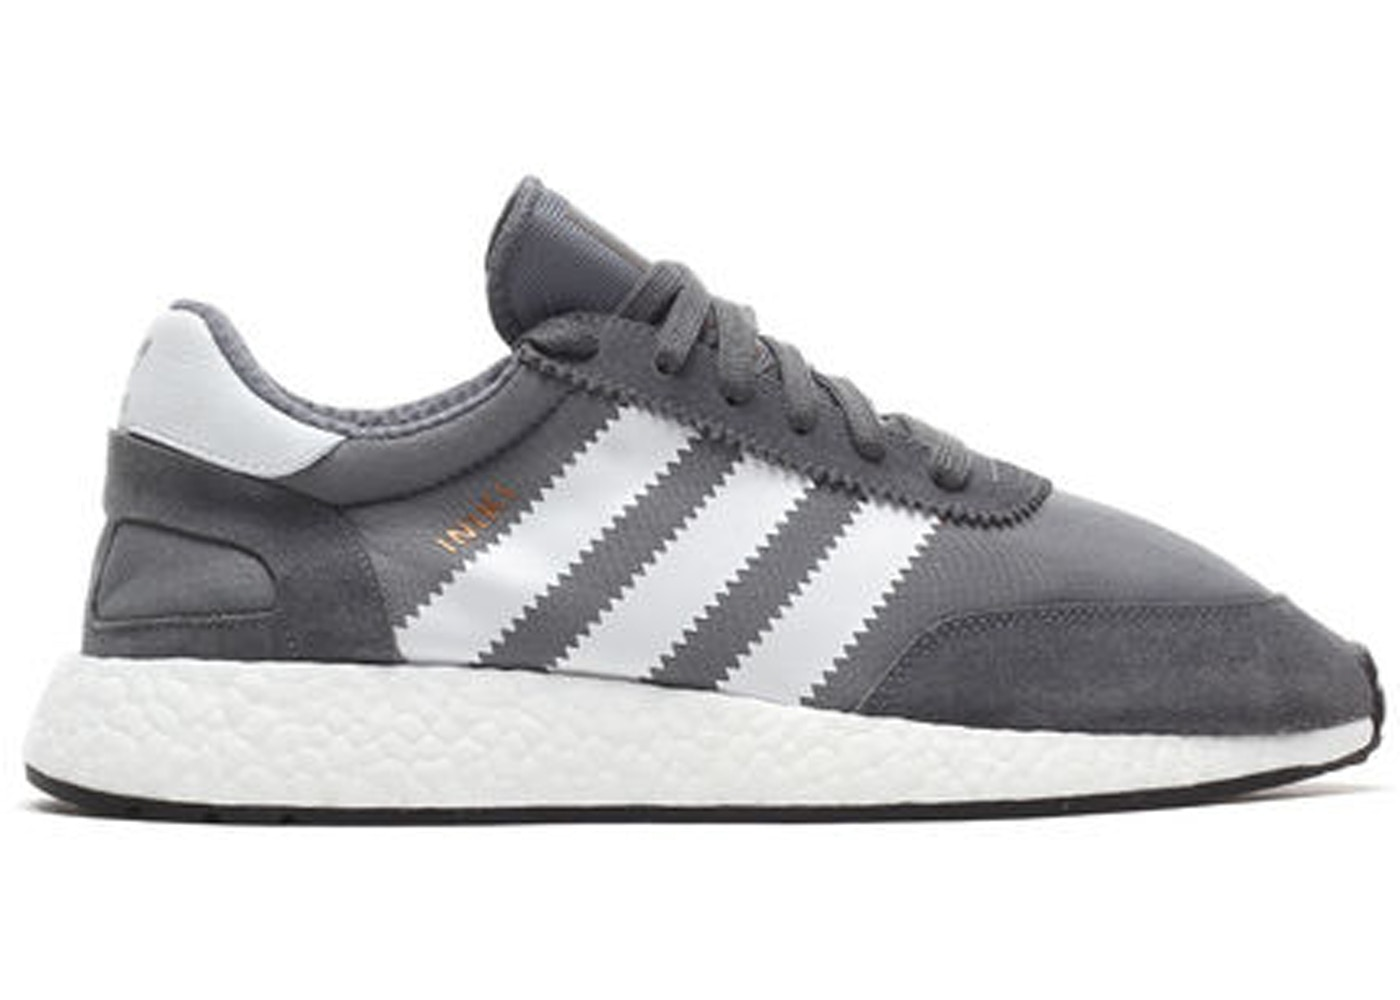 quality design f49b7 2d47a Buy adidas Iniki Shoes & Deadstock Sneakers